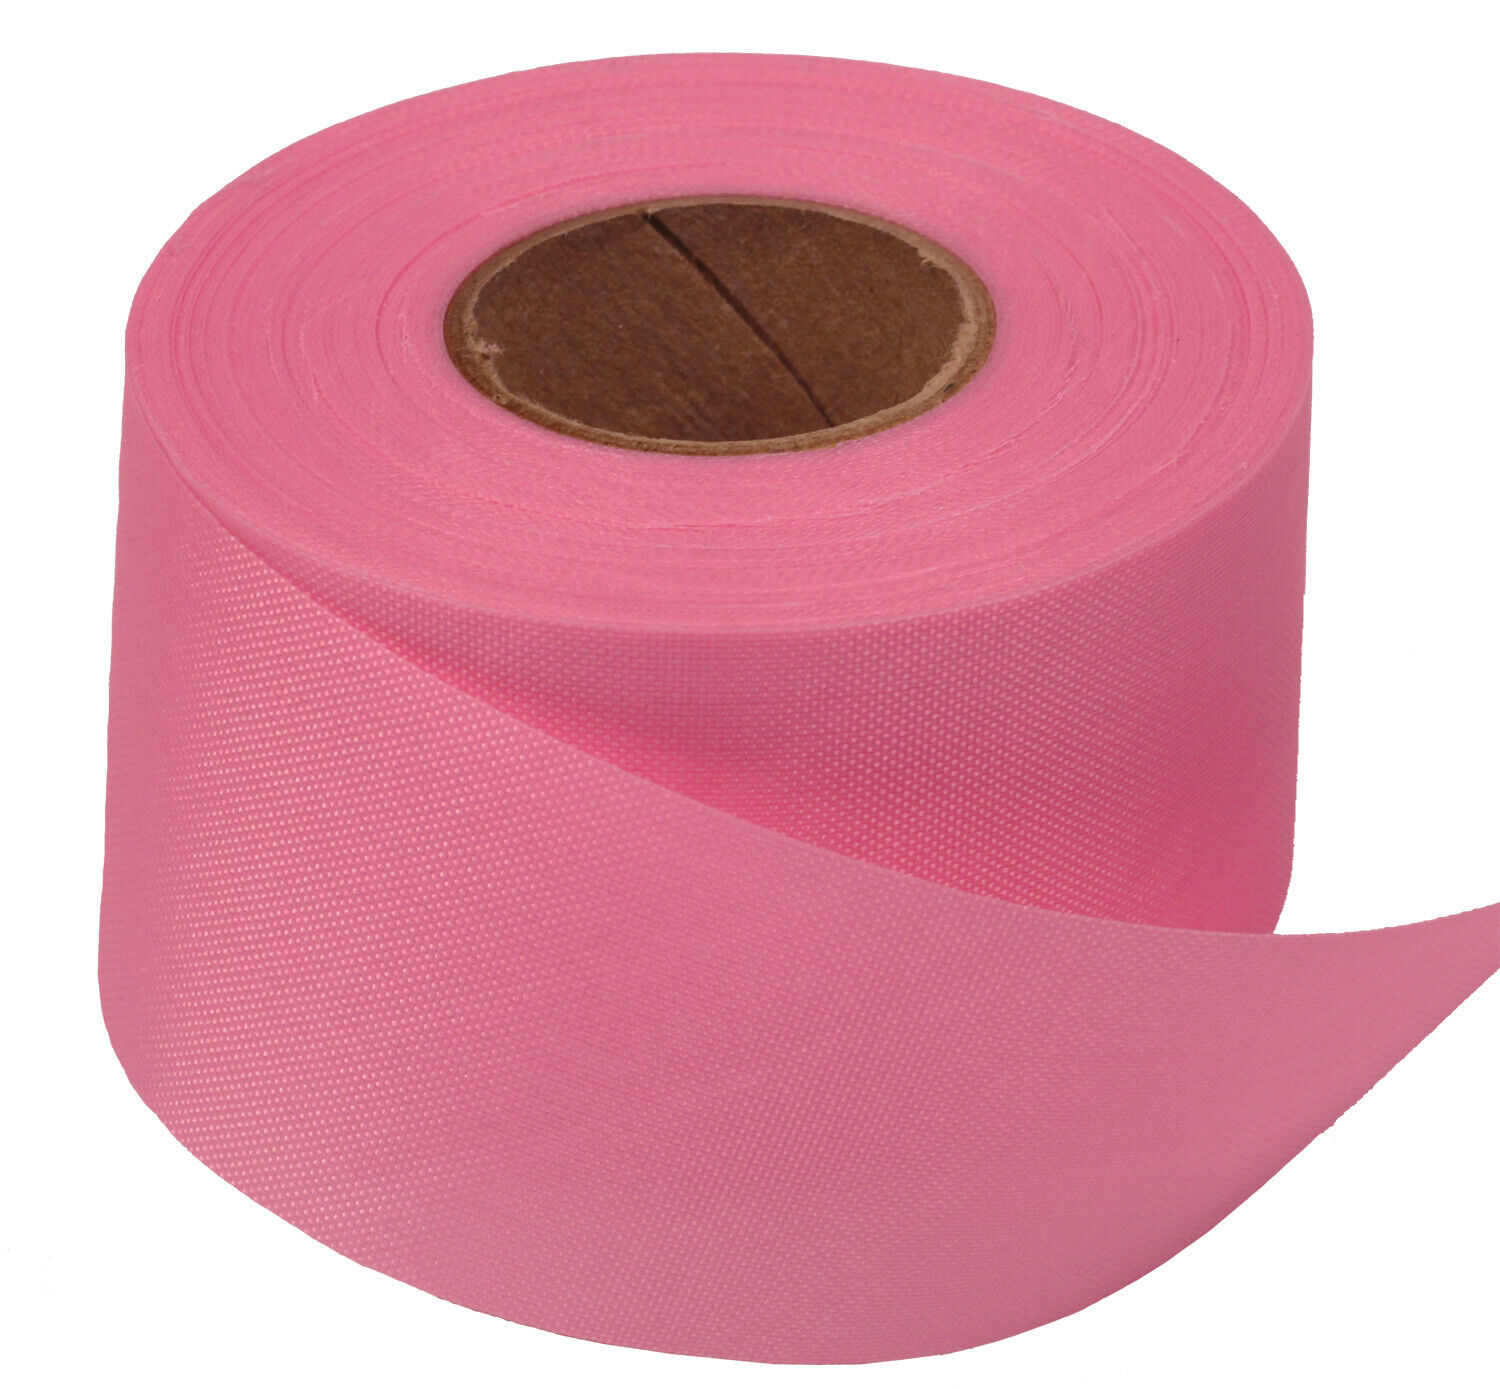 Windsock Fabric Streamer Material, 1-1/2 Inch Wide x 75 Foot Roll, DIY – Pink Crafting Pieces